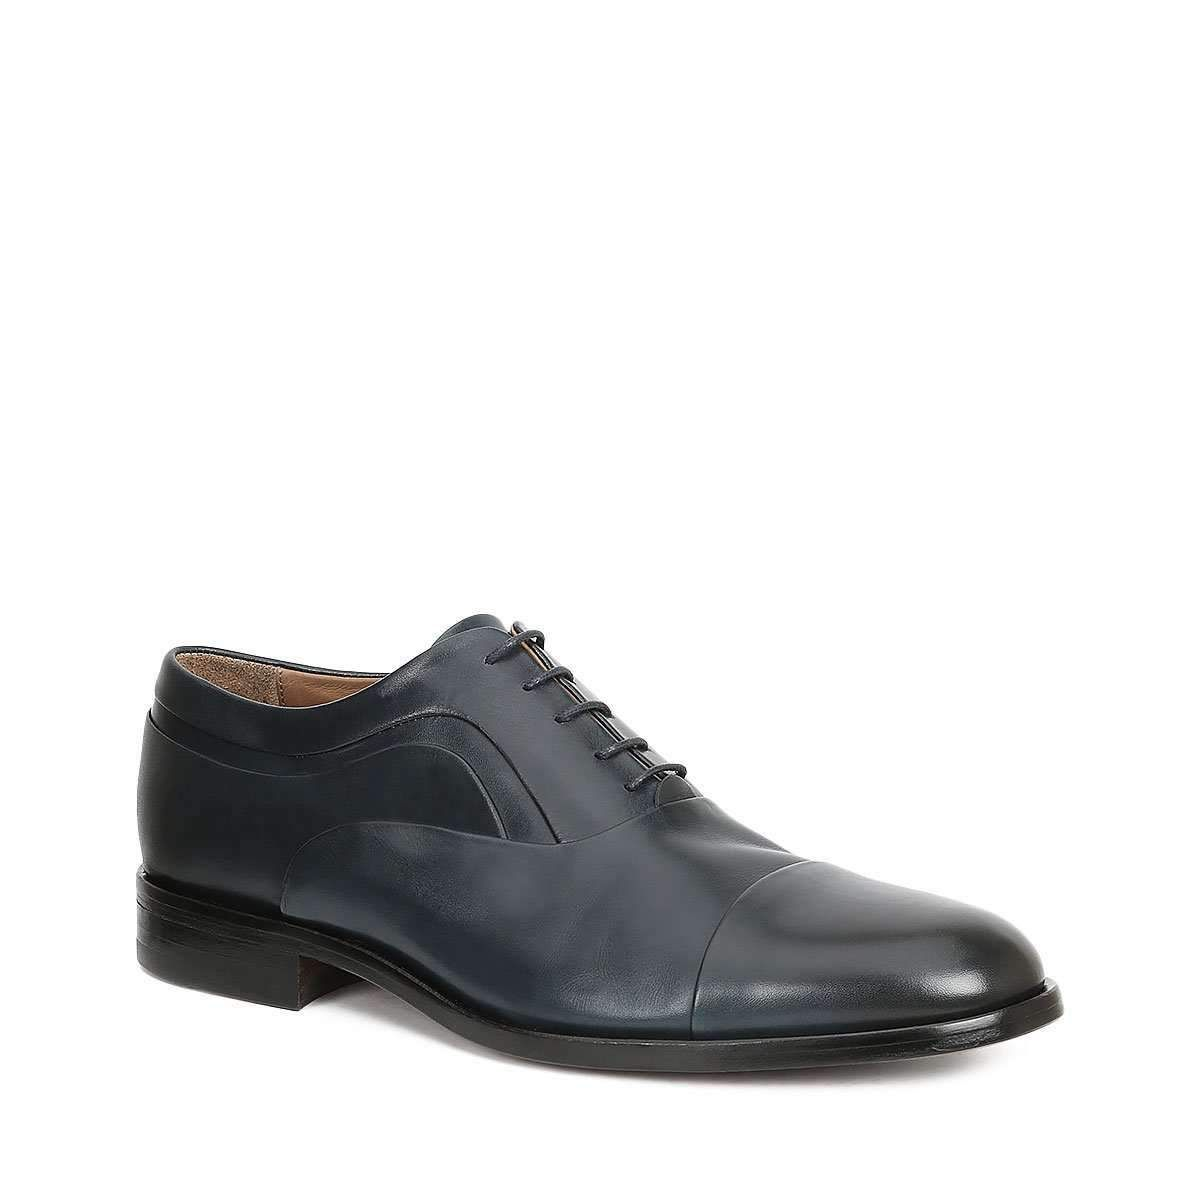 Bruno Magli Luxury Italian Handcrafted Sassiolo Mens Designer Shoes Navy Burnished Calfskin Oxfords (BM1046) (Special Price)